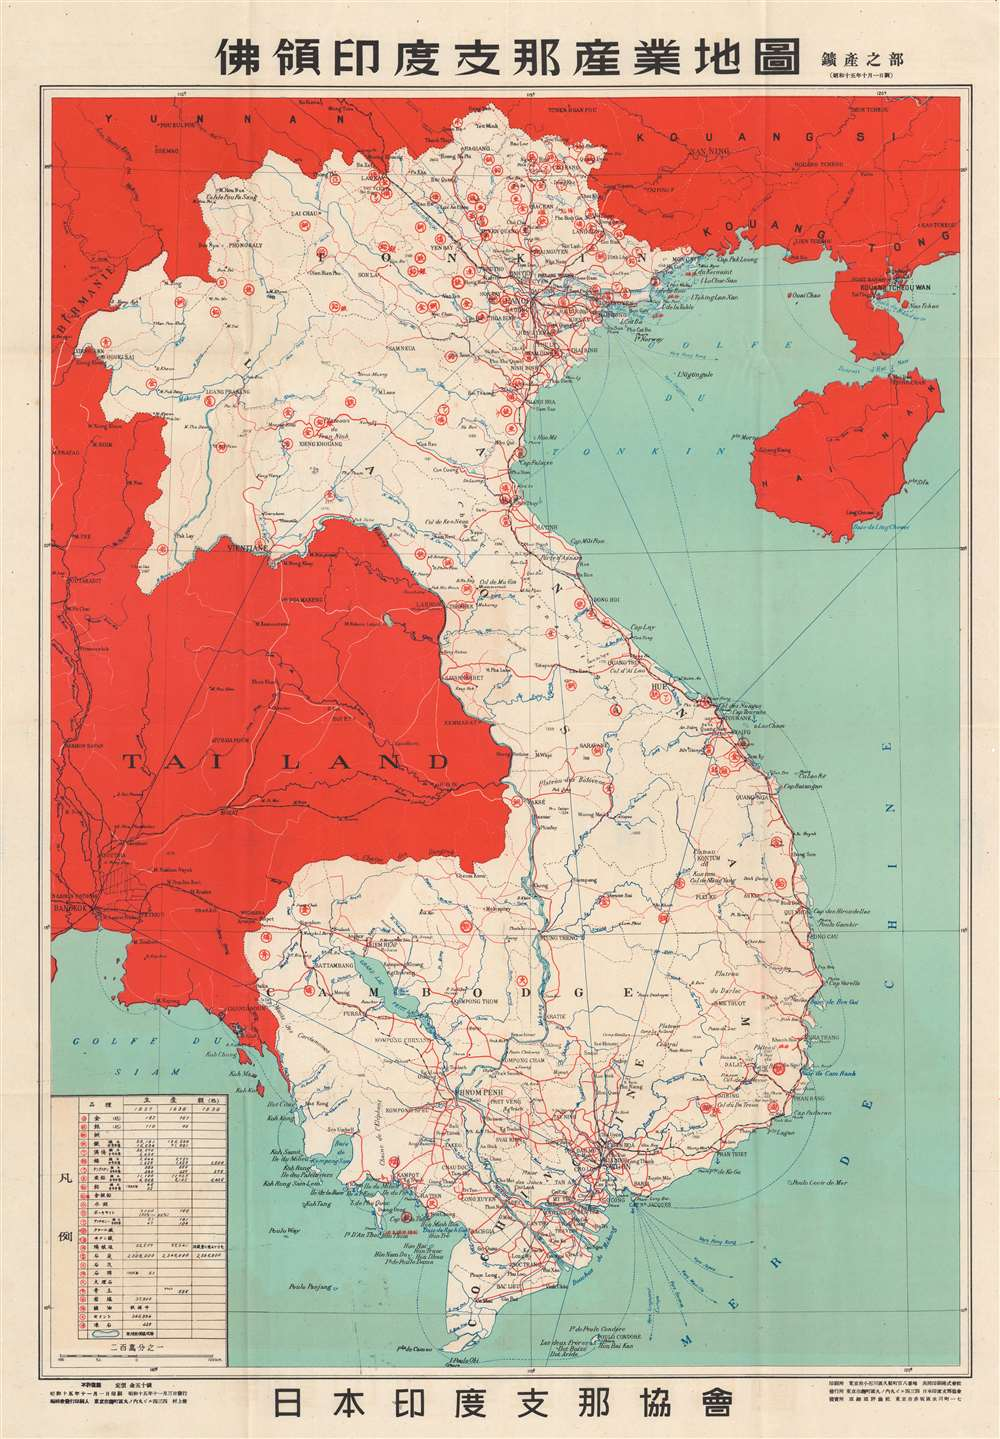 1940 Japan Association Map of French Indochina / Vietnam Mineral Resources